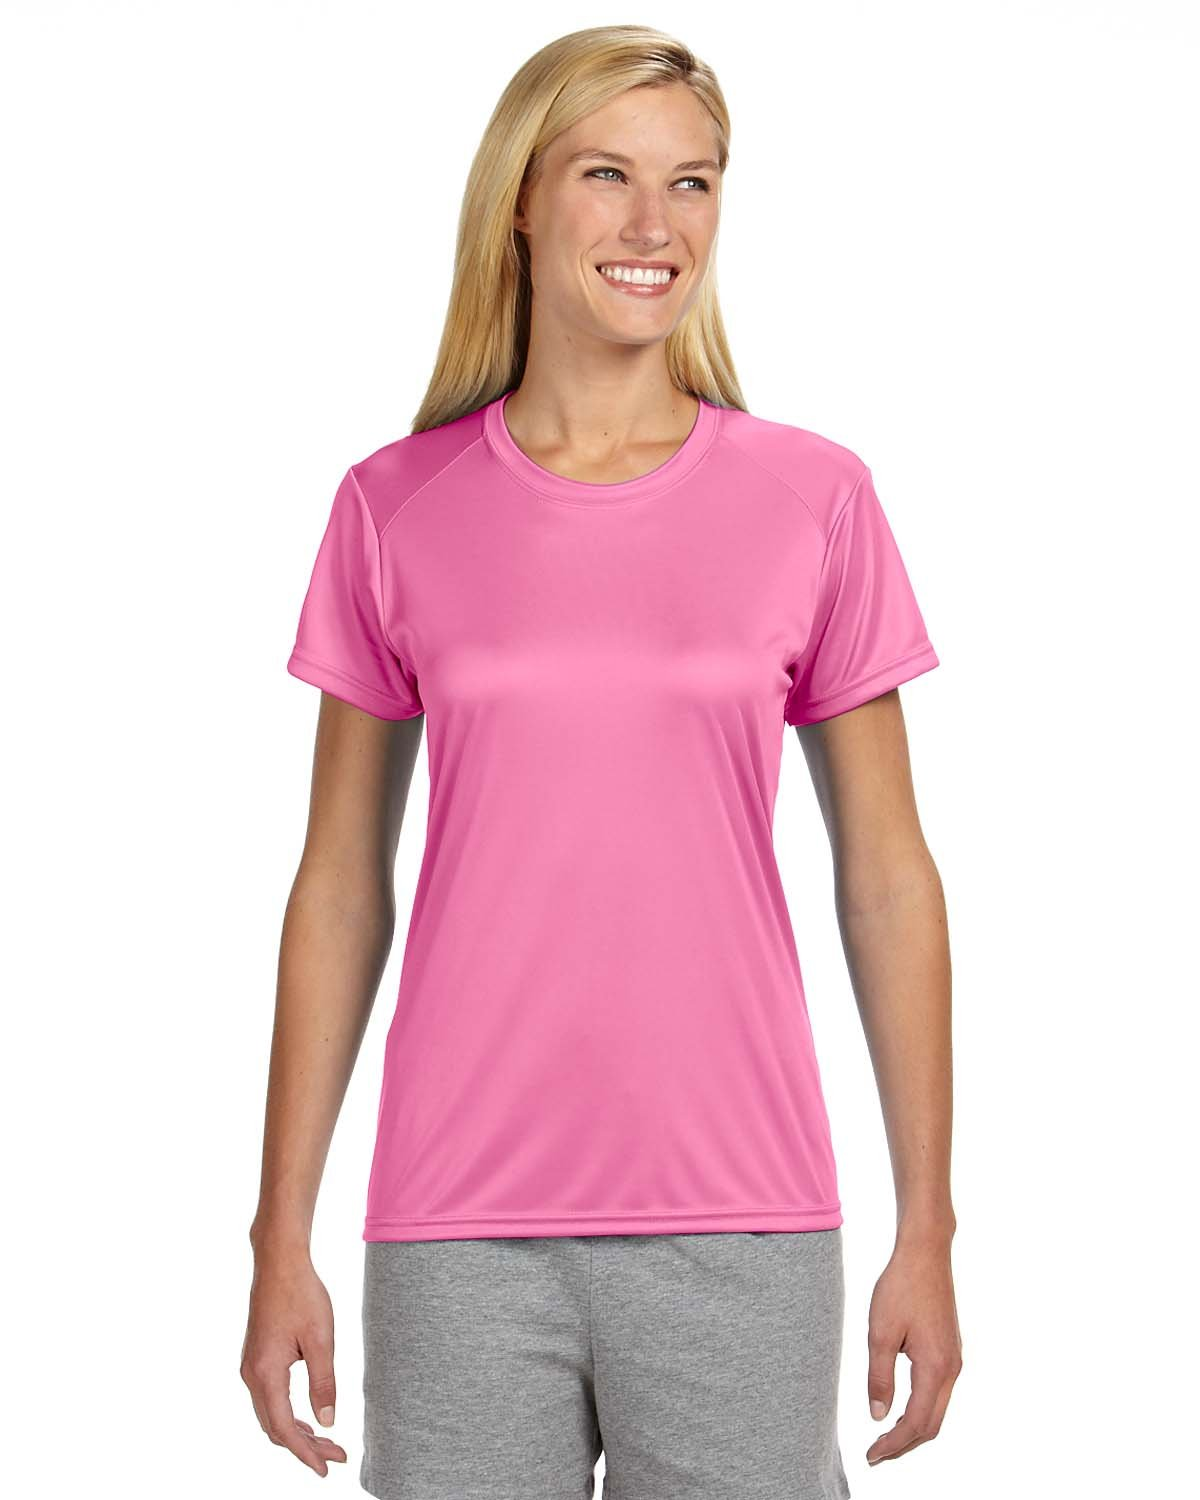 A4 Ladies' Cooling Performance T-Shirt PINK